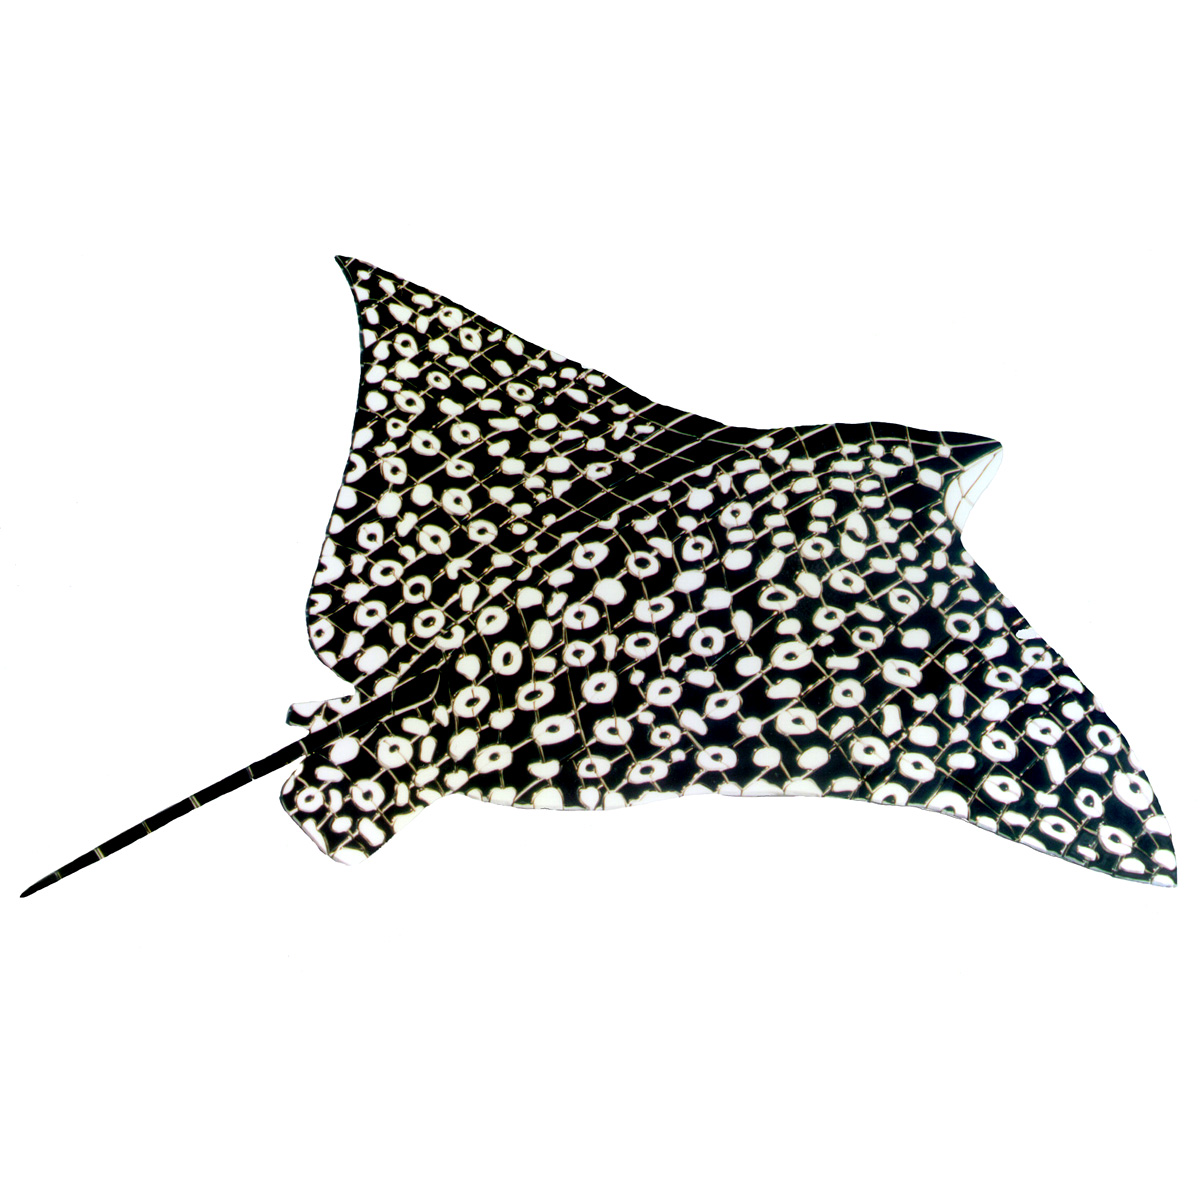 Eagle Sting Ray, Custom Ceramic Mosaic